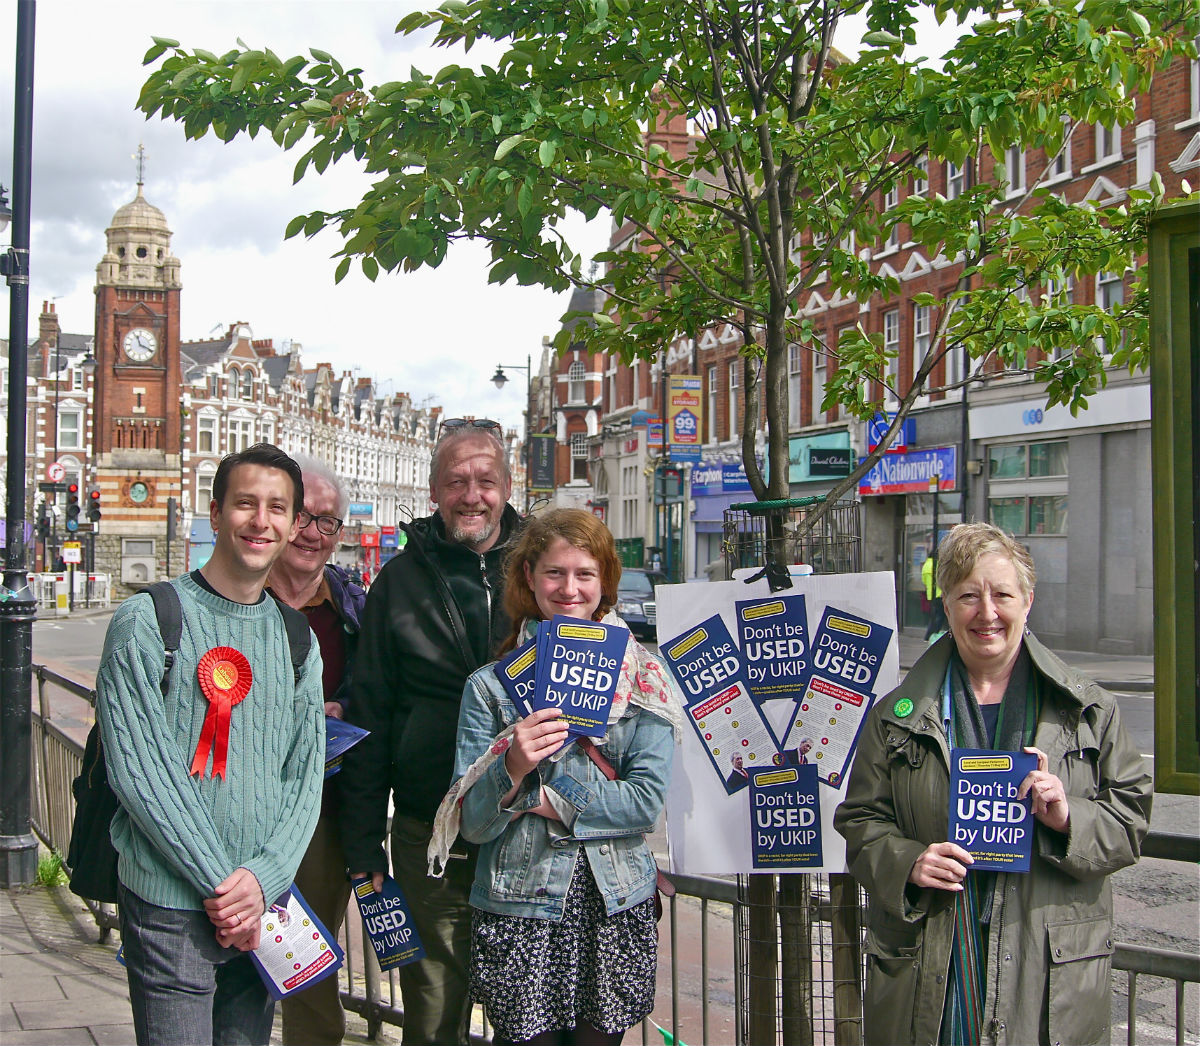 Members of Labour, the Liberal Democrats and TUSC handed out anti-UKIP leaflets in Crouch End this week